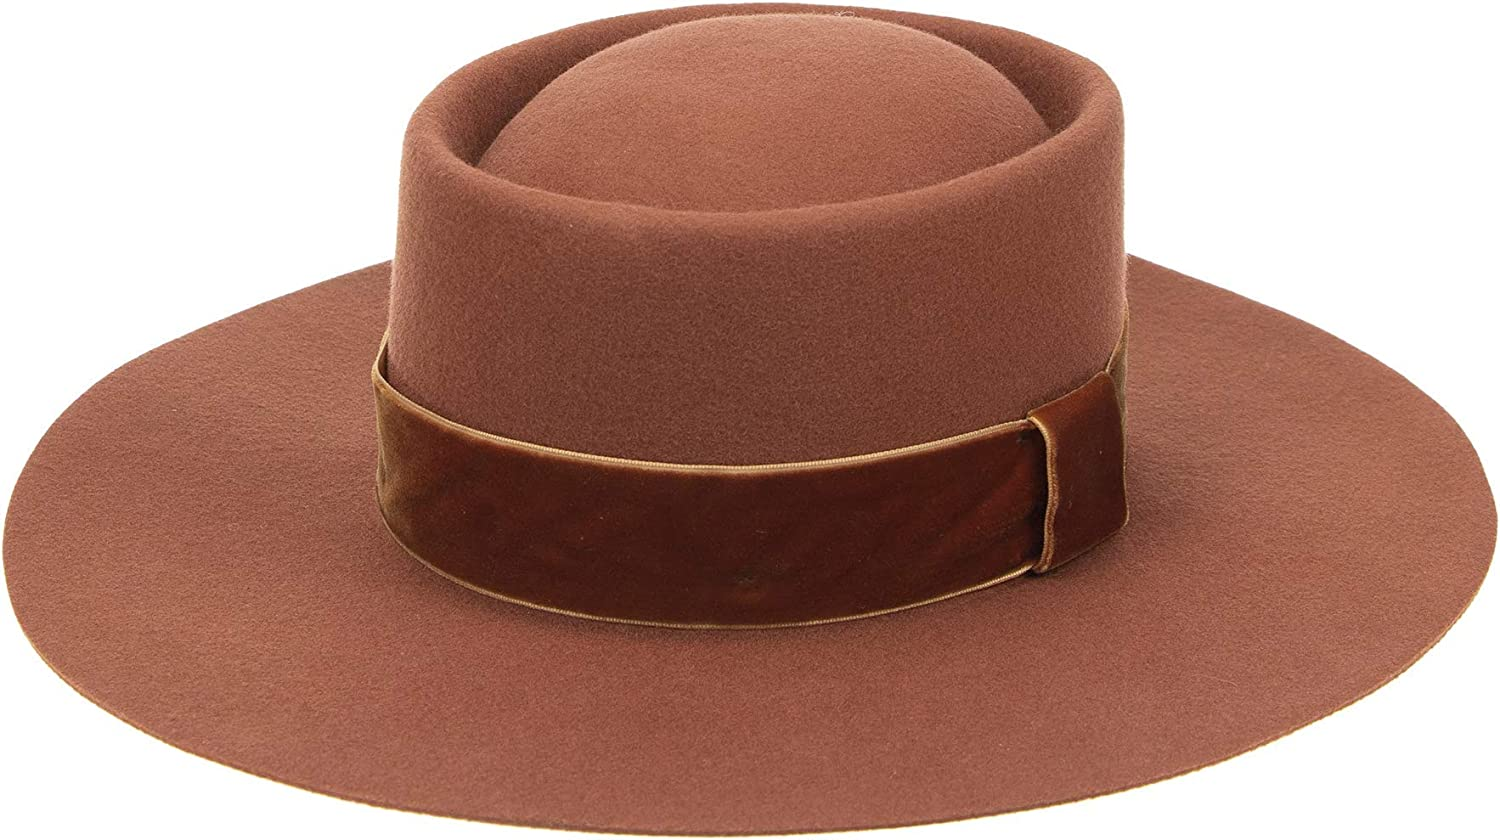 Fedora for Women Wool Felt Fresno Mall Boater Hat Wi Flat Style Top Pork Special price Pie